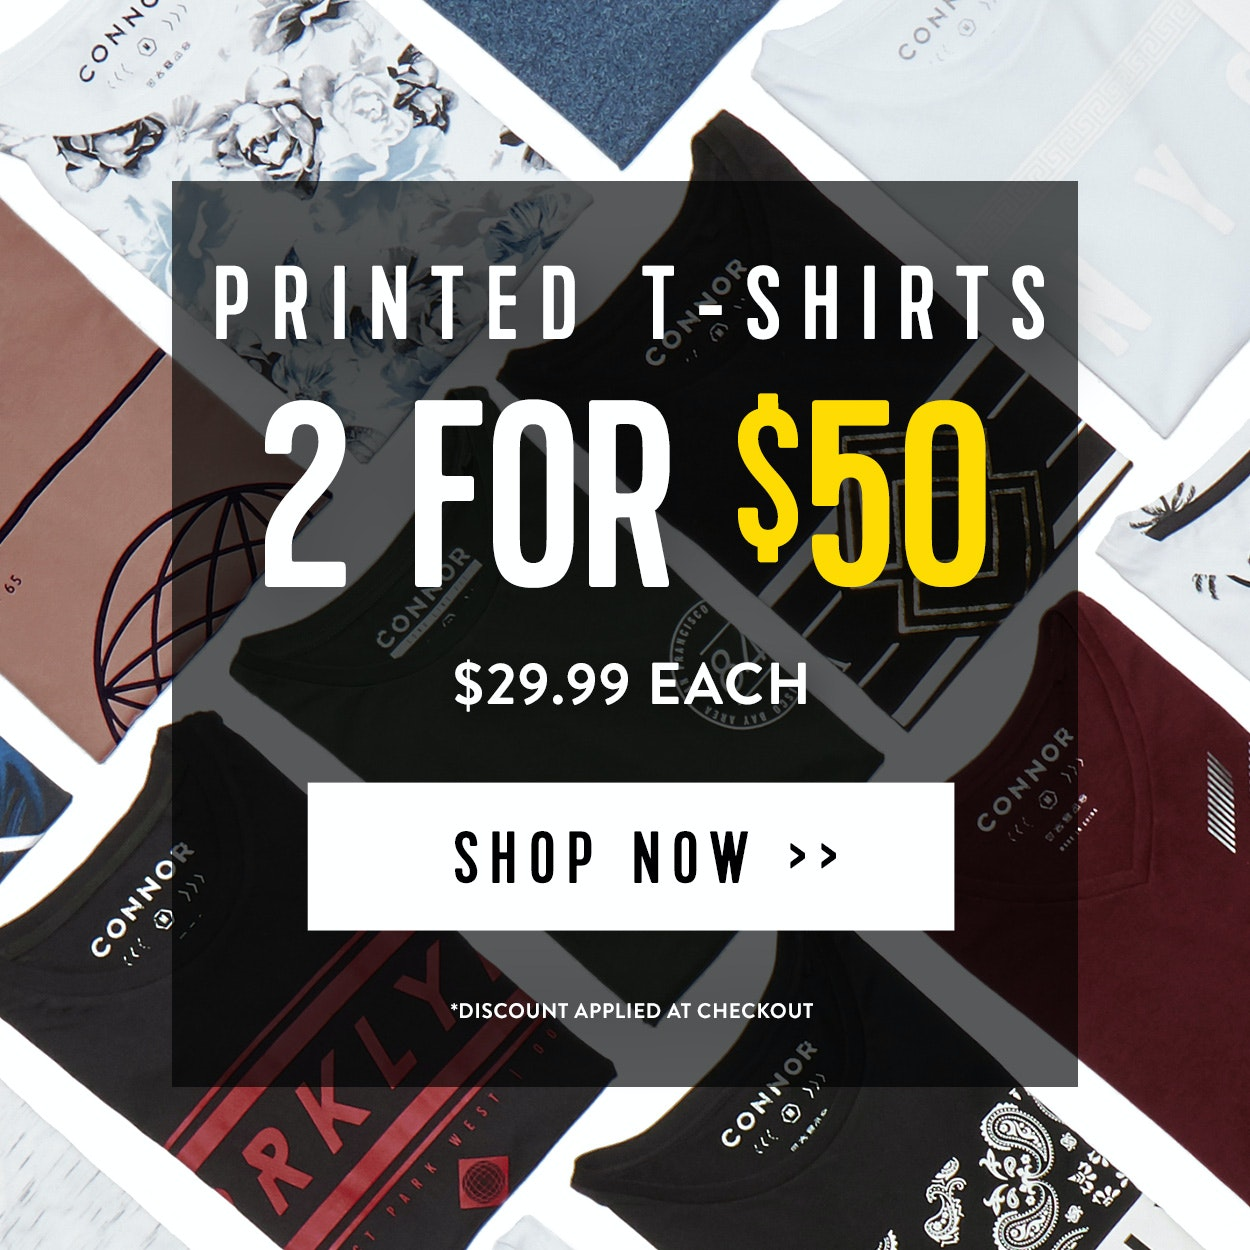 2 for 50 T-Shirts